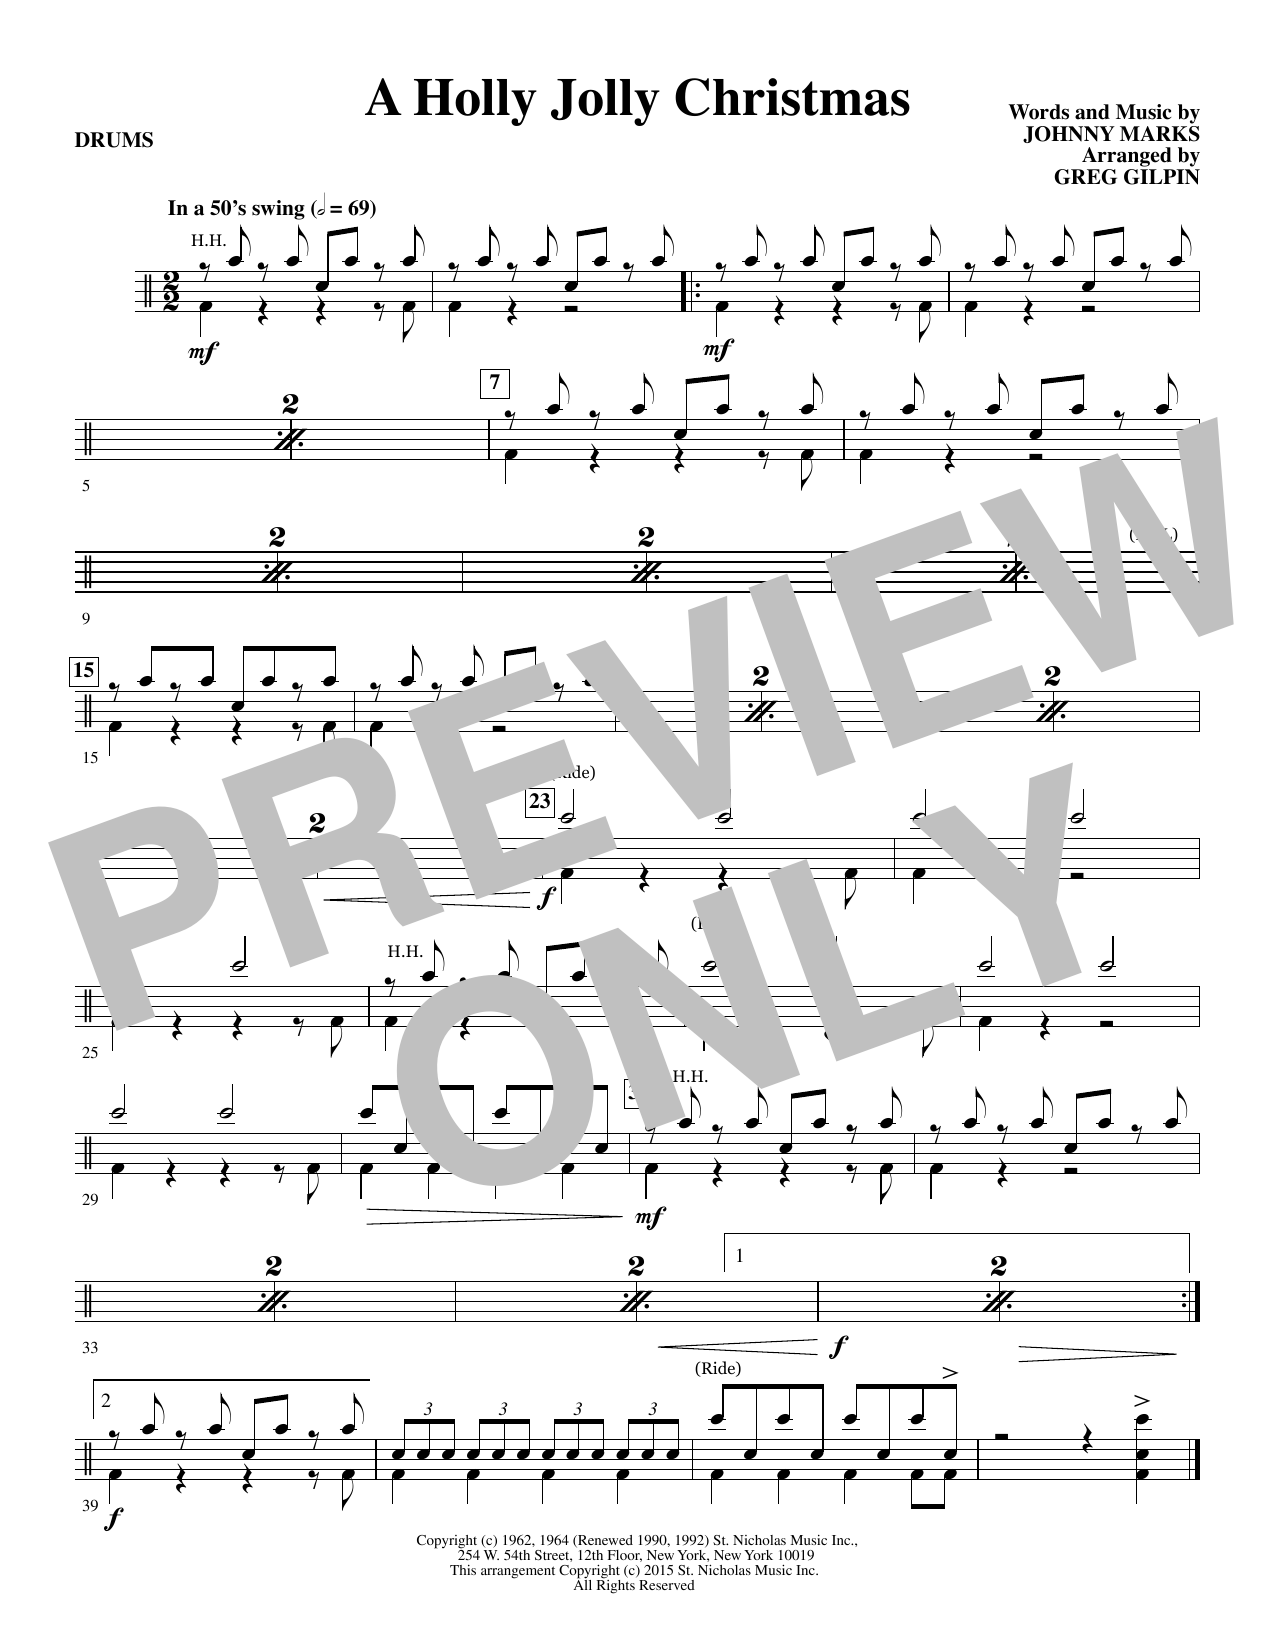 A Holly, Jolly Christmas - Drum Set | Greg Gilpin | Choral ...